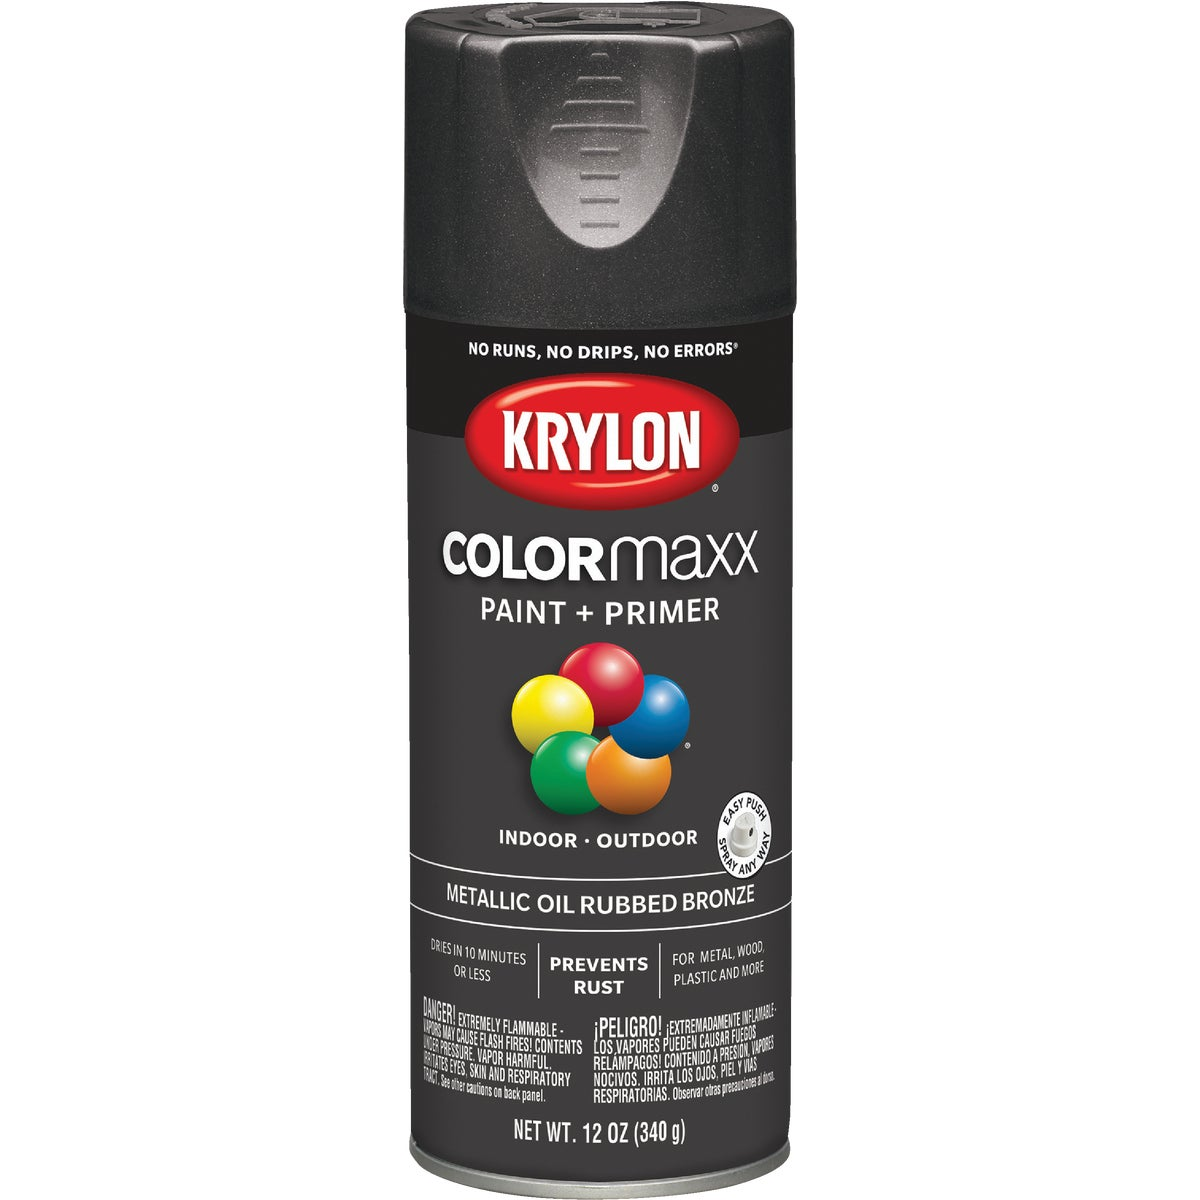 OIL R BRONZE SPRAY PAINT - 51254 by Krylon/consumer Div